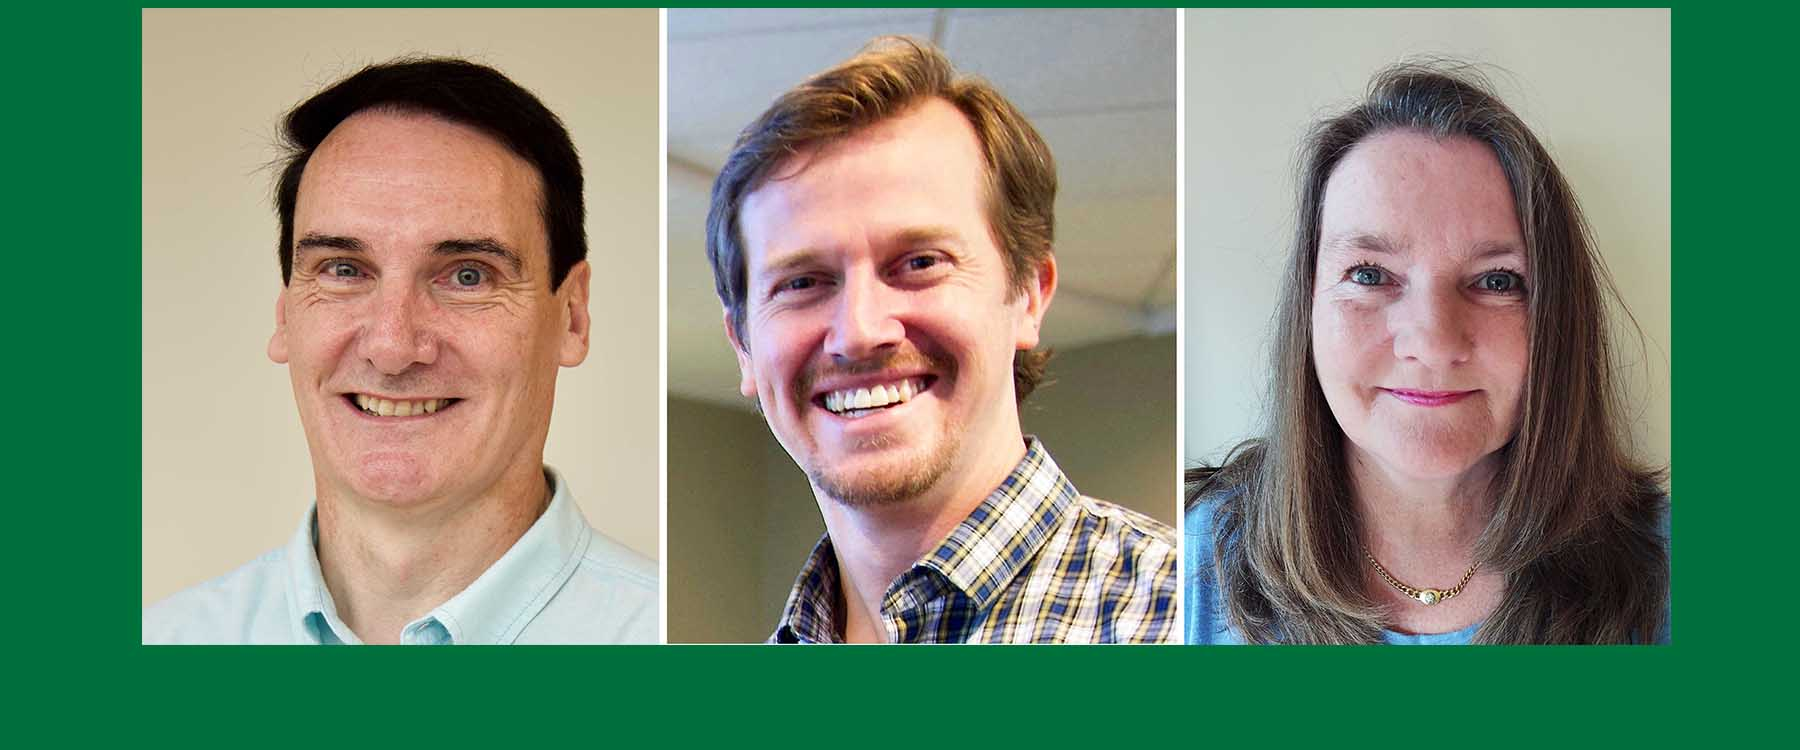 CLAS recognizes faculty members for exceptional teaching